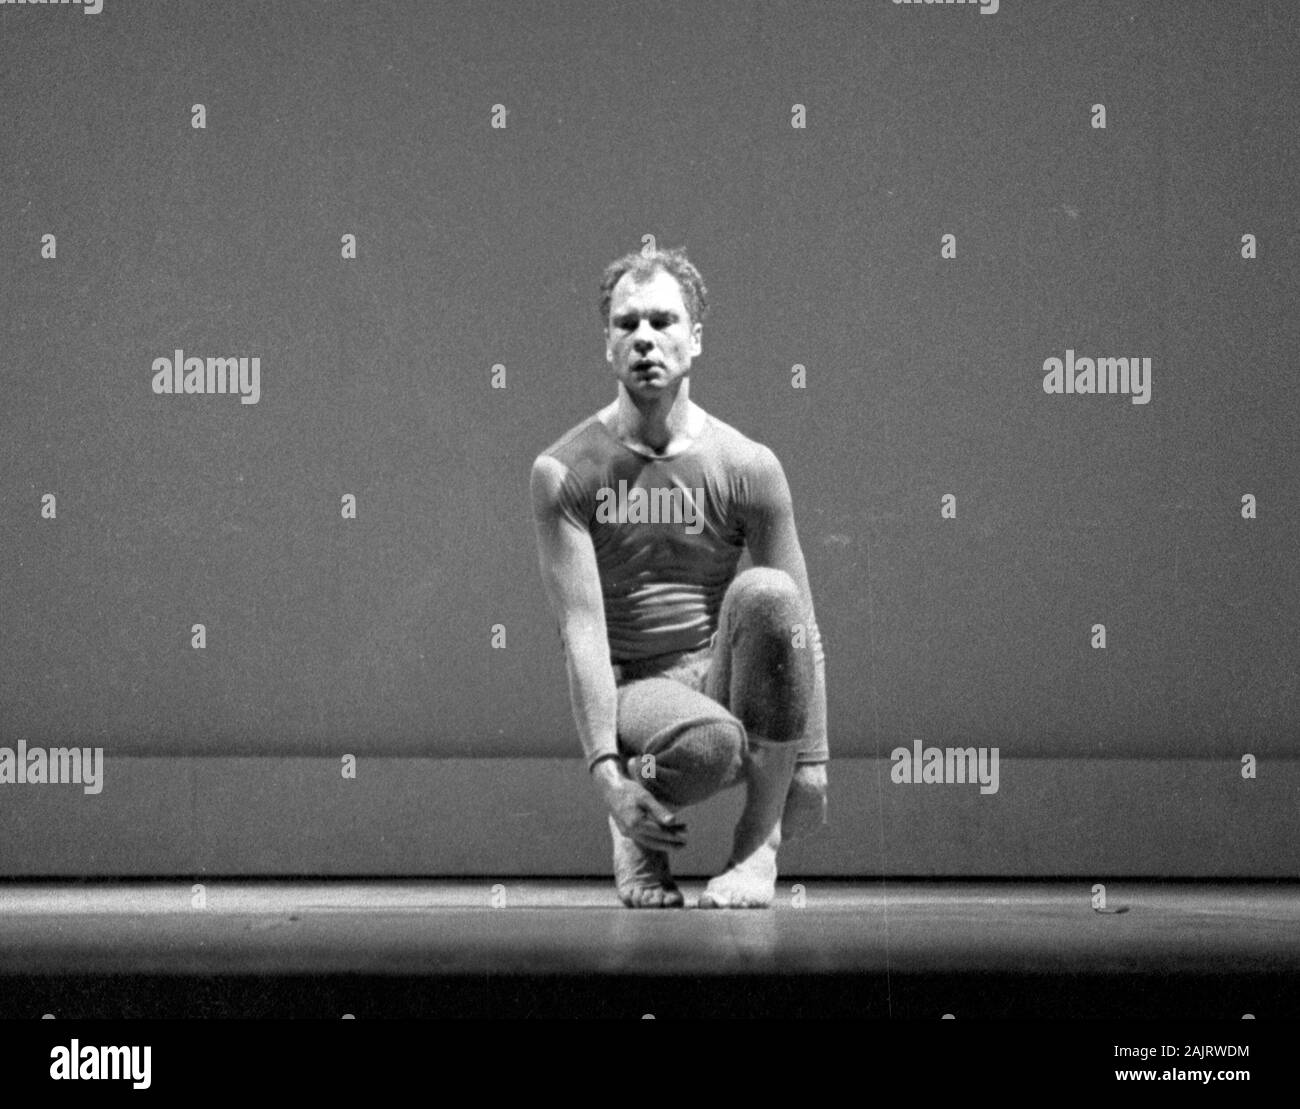 Merce Cunningham in New York City 1957, most likely these images show Cunningham performing The Changeling, which places the date as November 30, 1957. Stock Photo